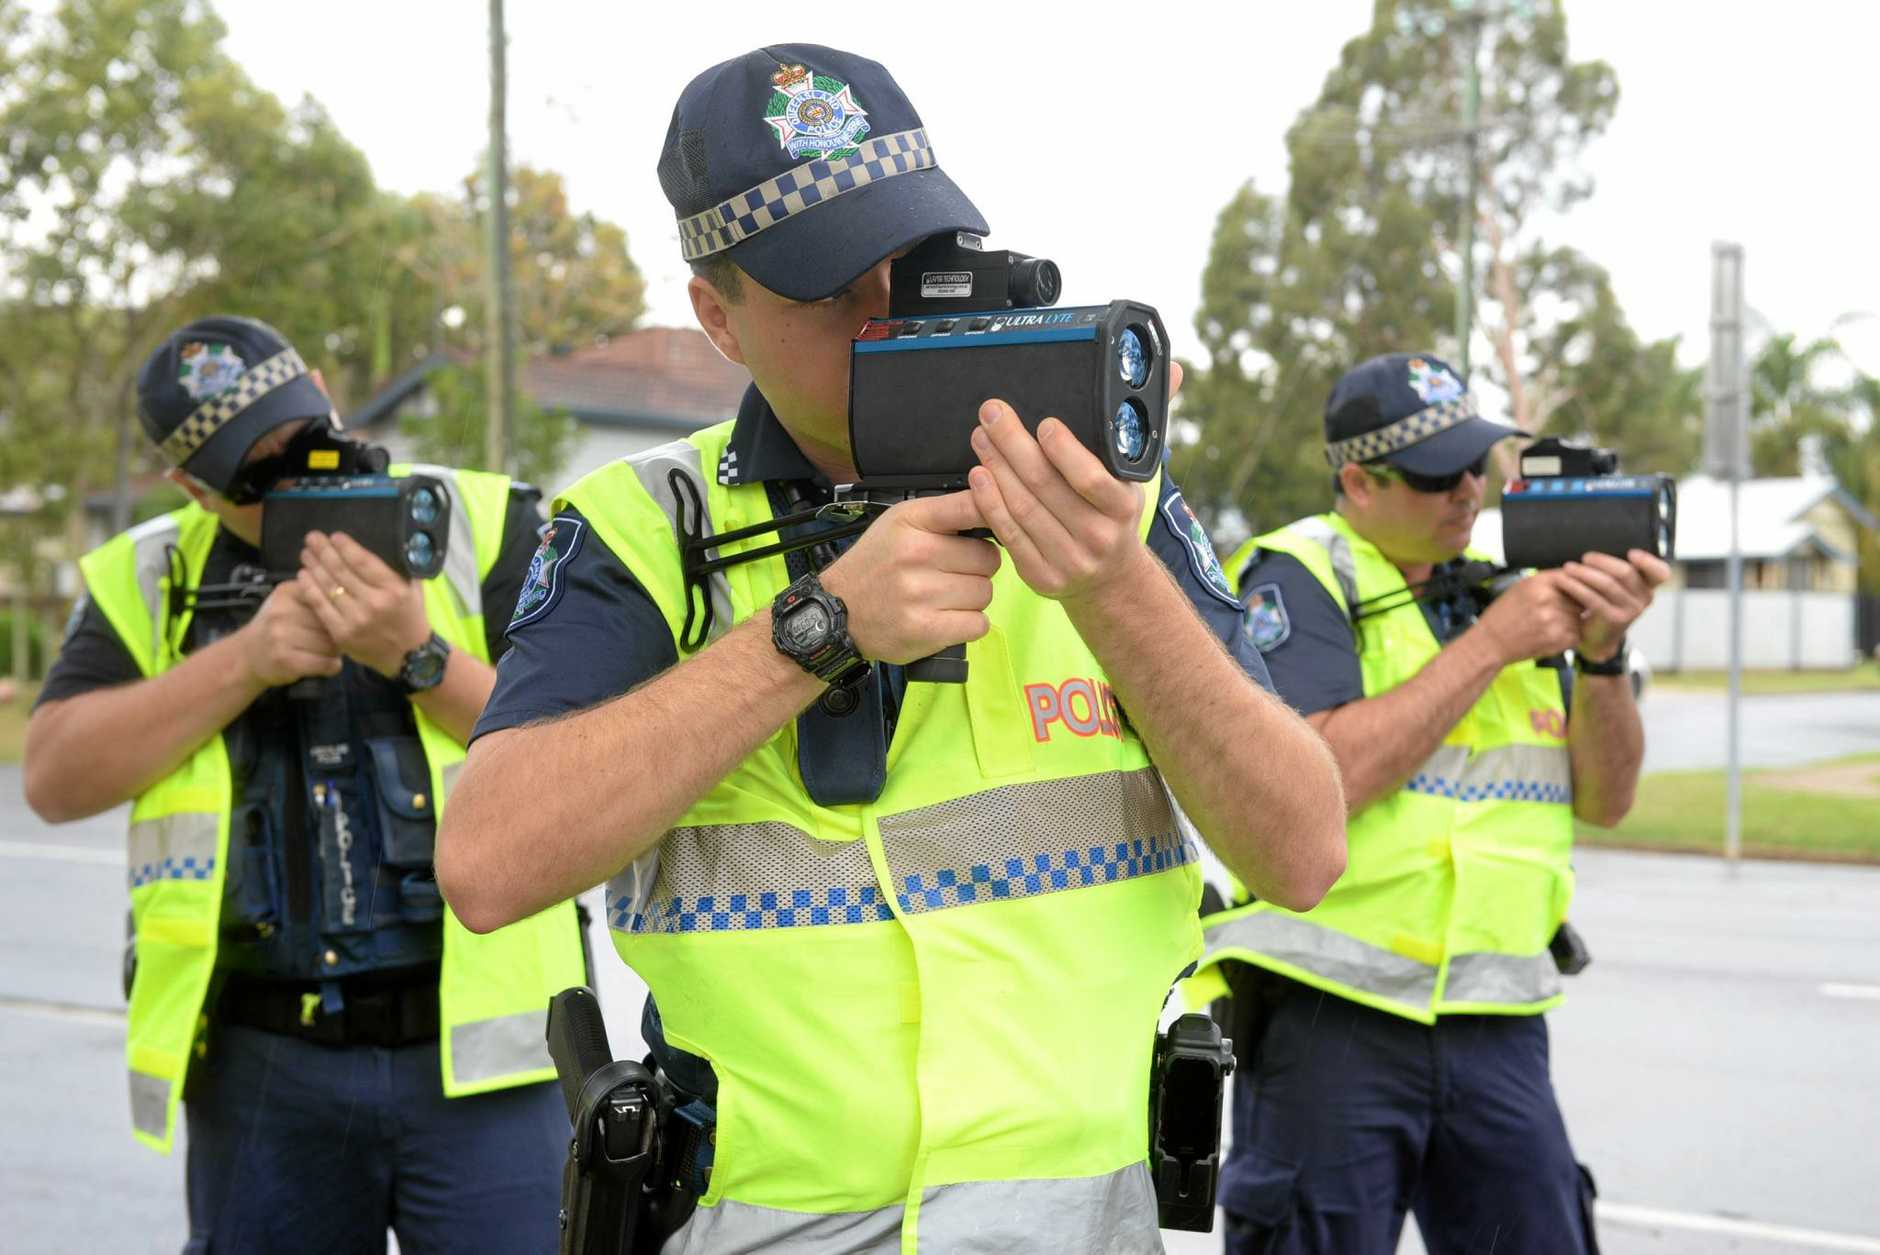 ROAD SAFETY: Police will be out in force this week to crack down on road offences across the Fraser Coast, as part of Road Safety Week.